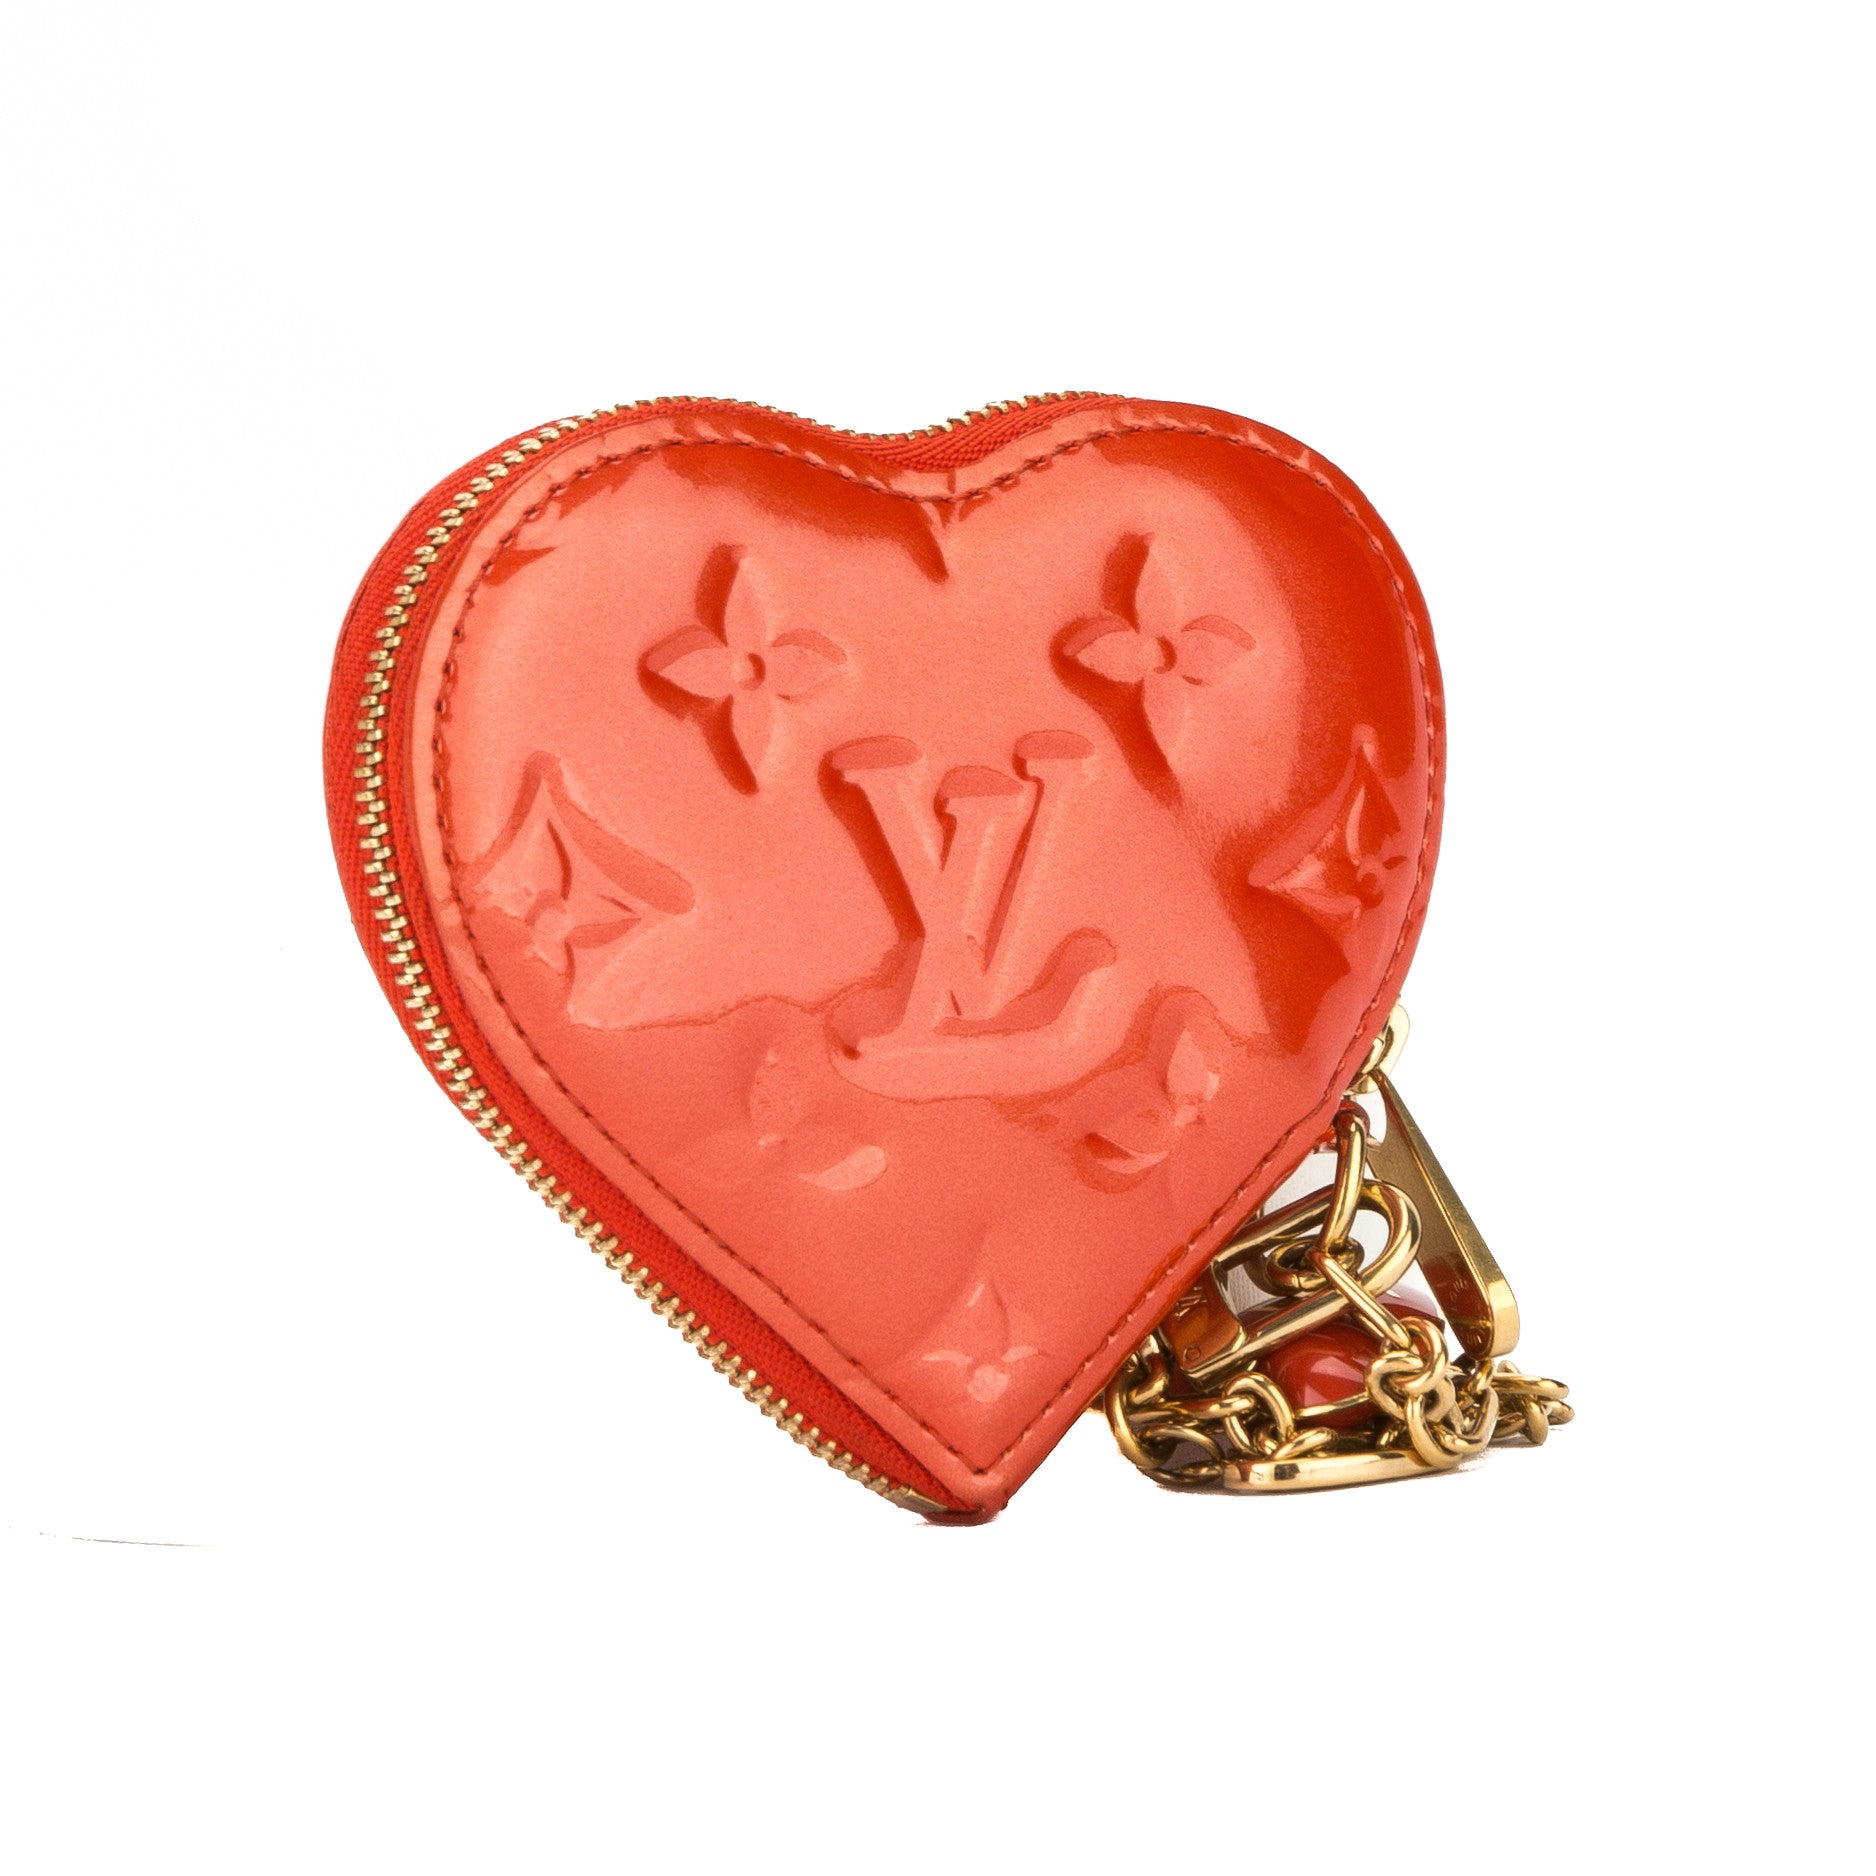 7f3f8994c Louis Vuitton Pomme D'Amour Monogram Vernis Heart Coin Purse (3199049) -  3199049 | LuxeDH